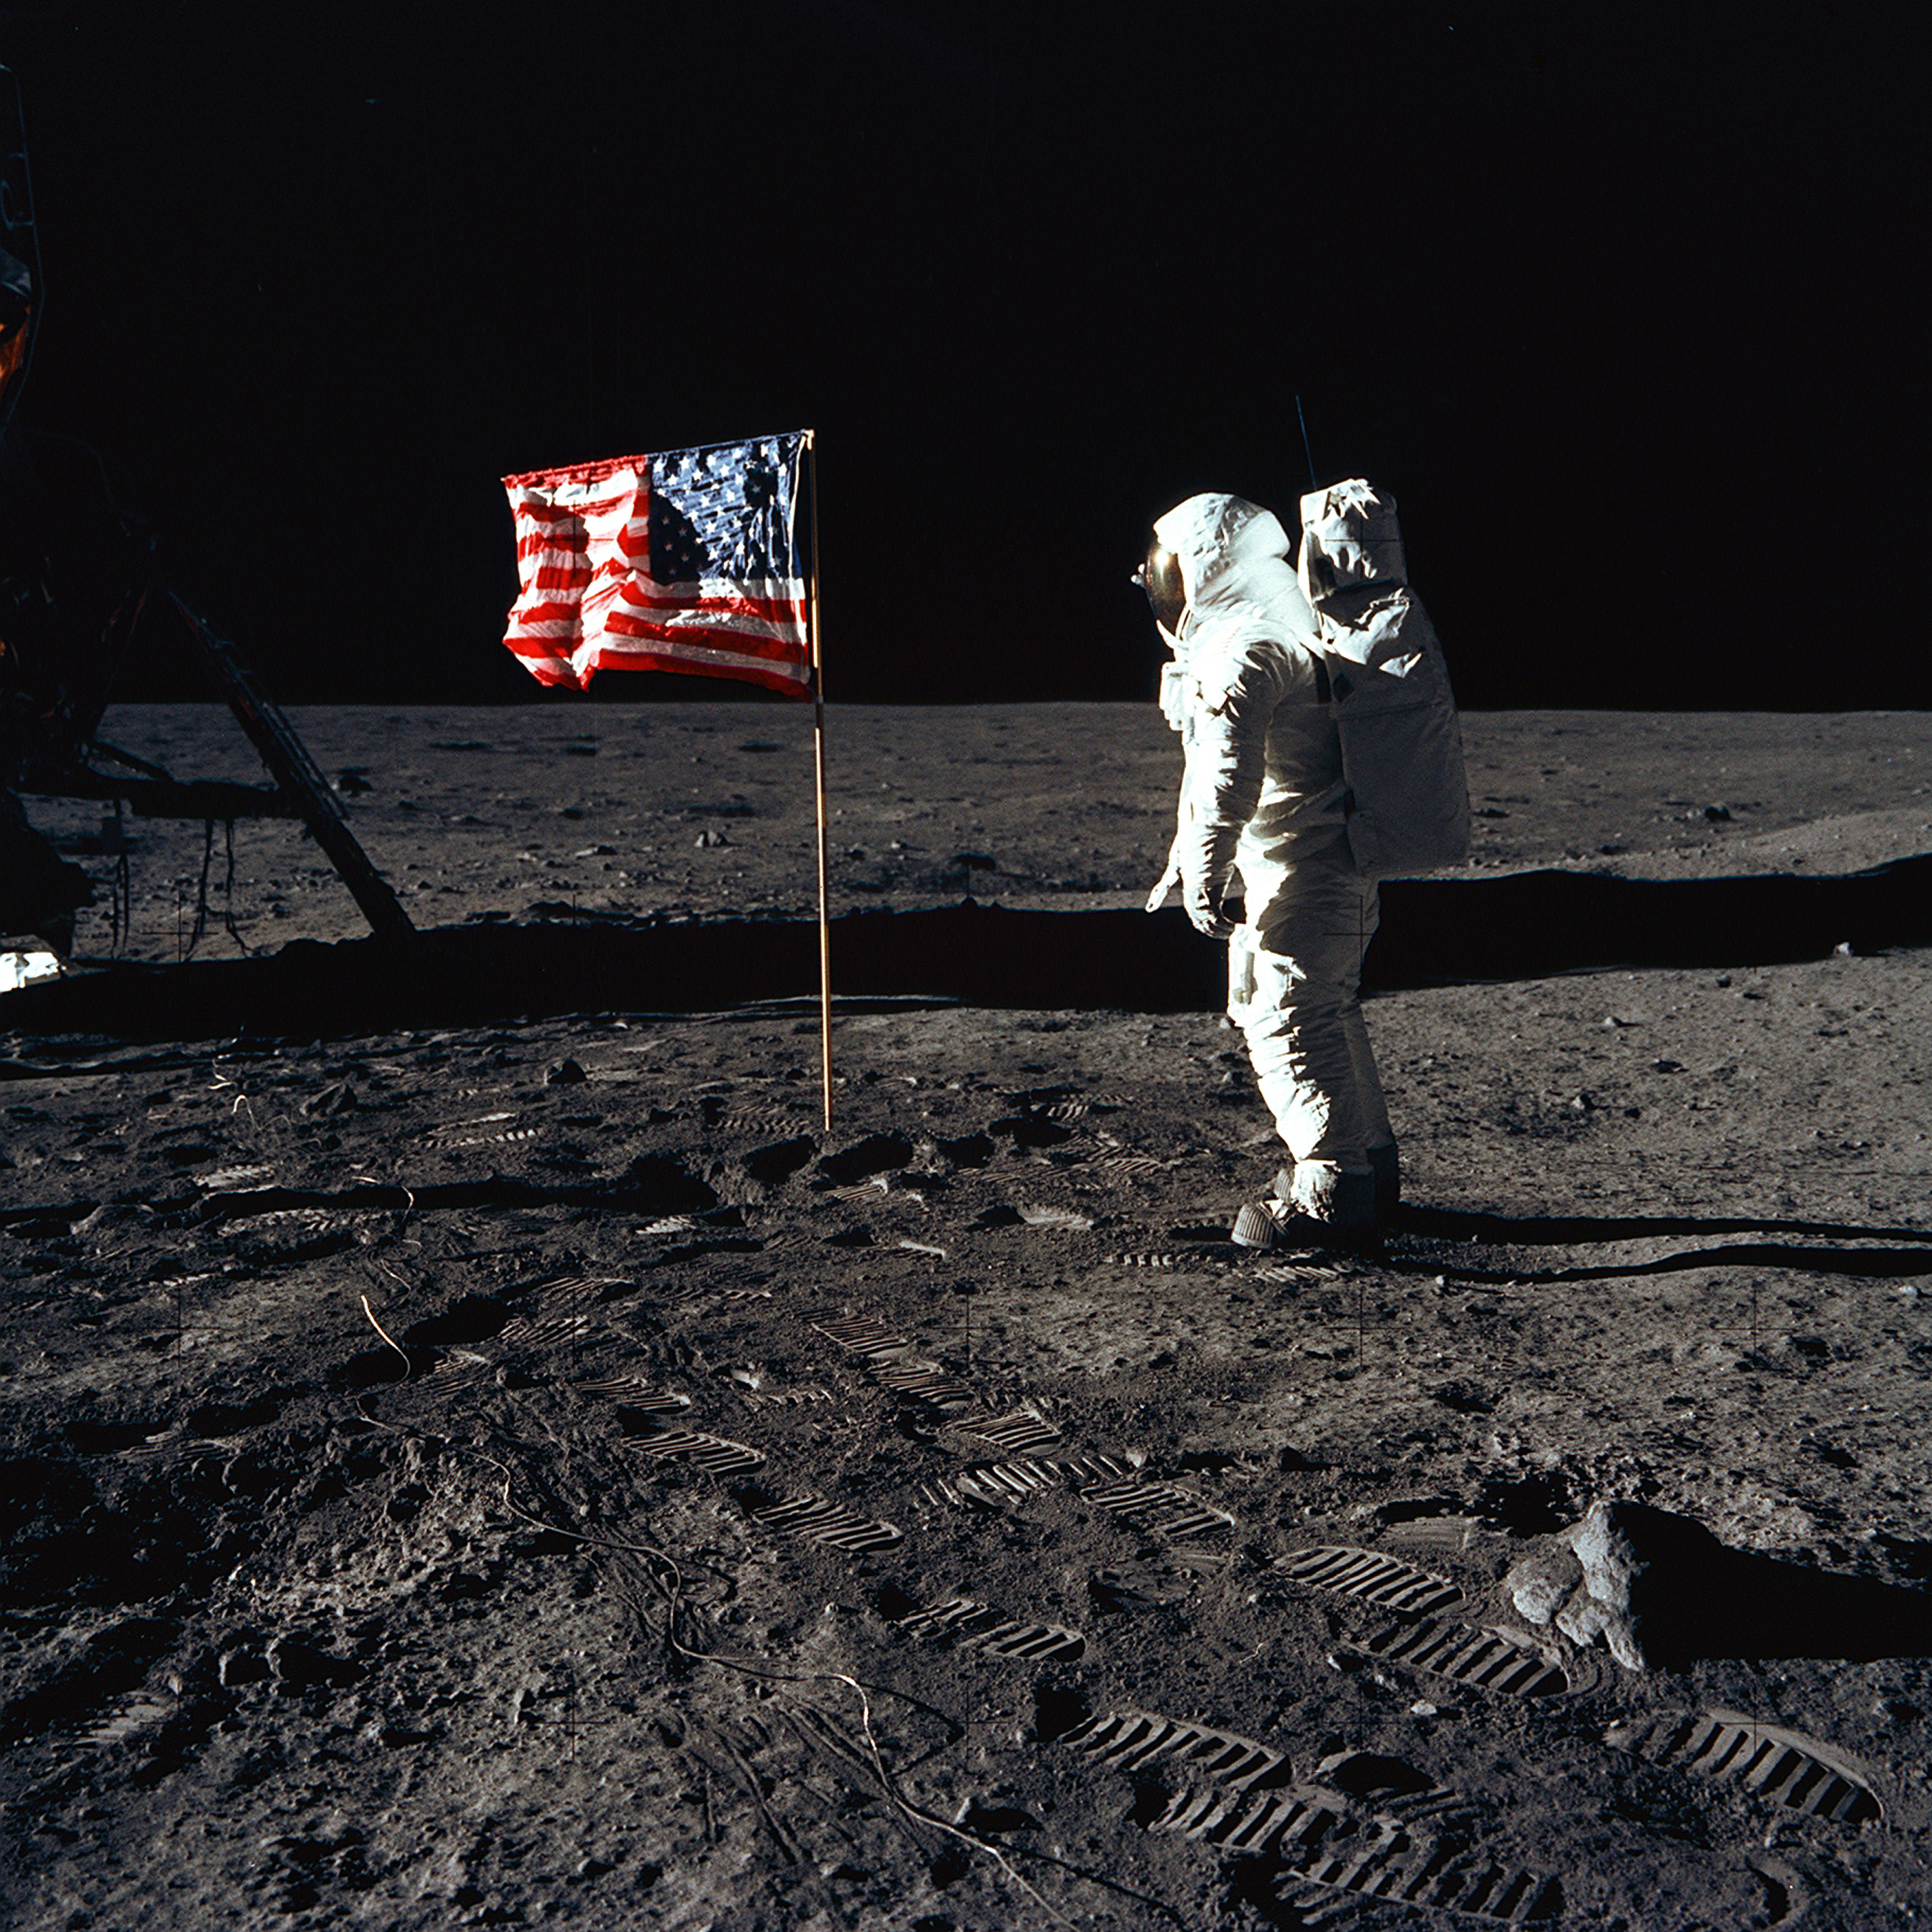 moon landing hoax flag - photo #14